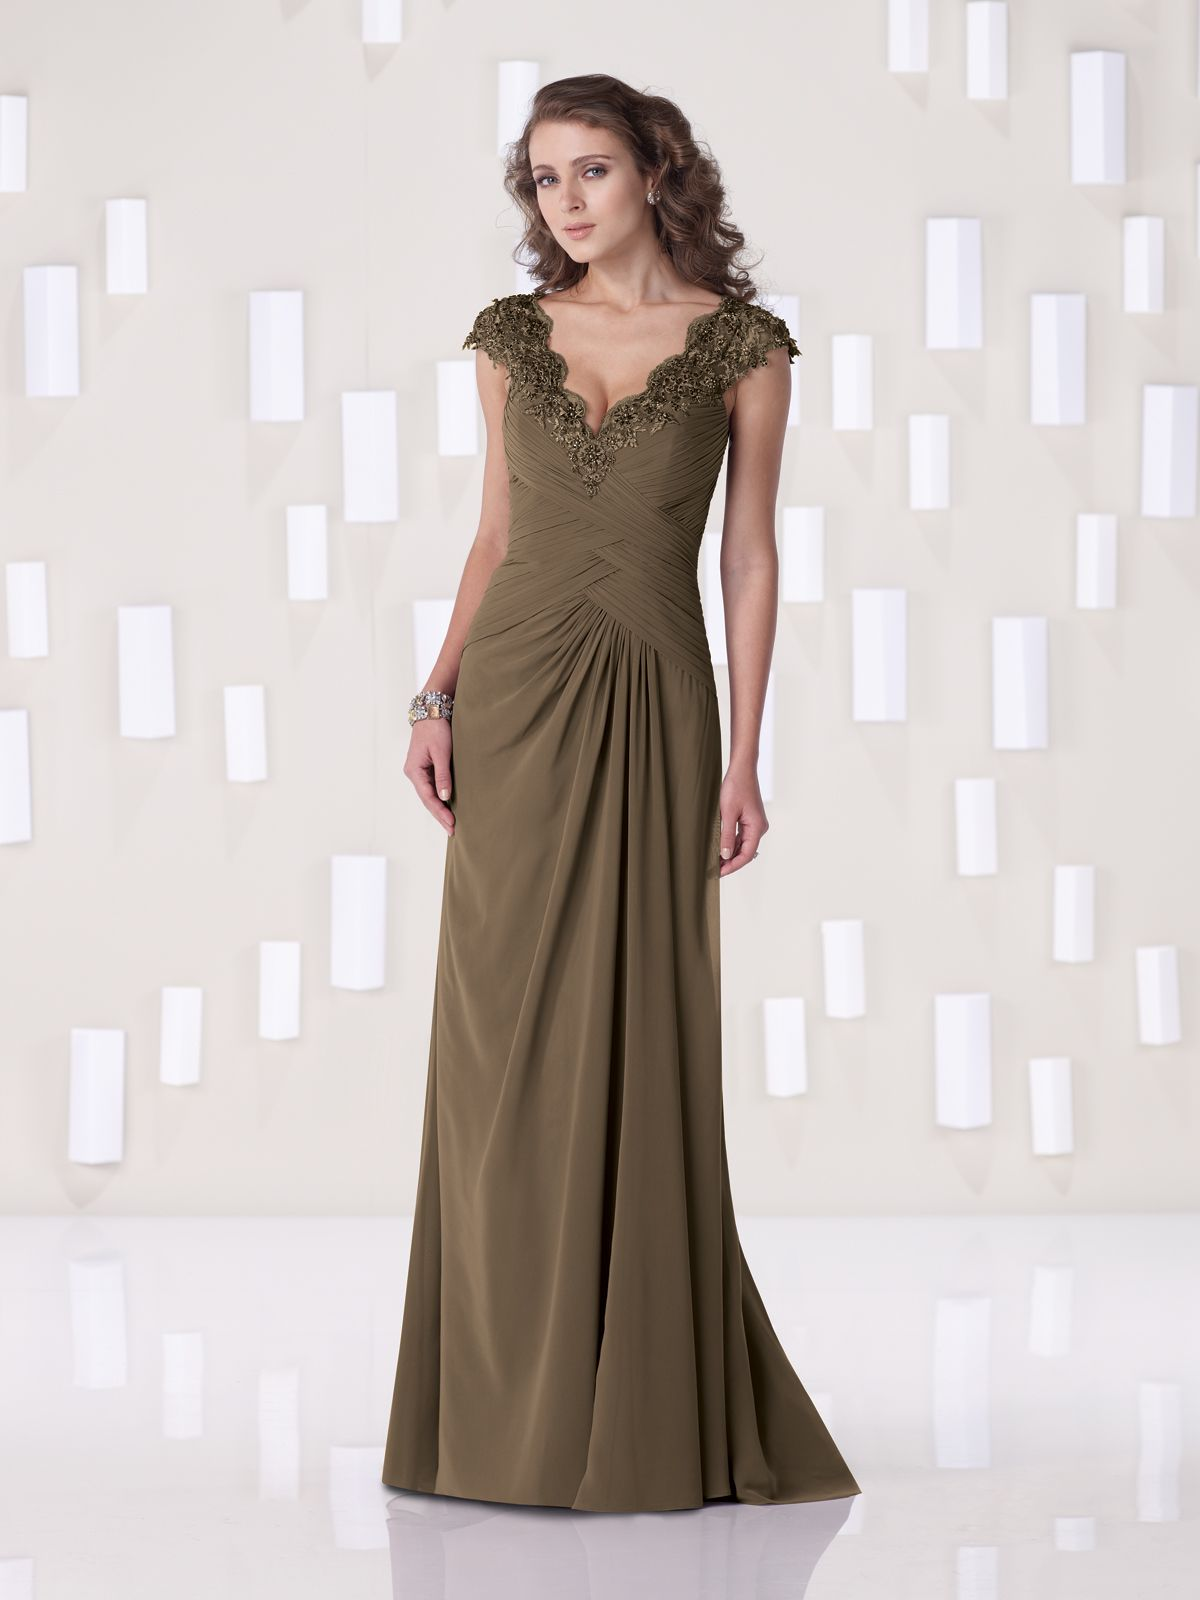 Kathy Ireland for Mon Cheri Special Occasion » Style No